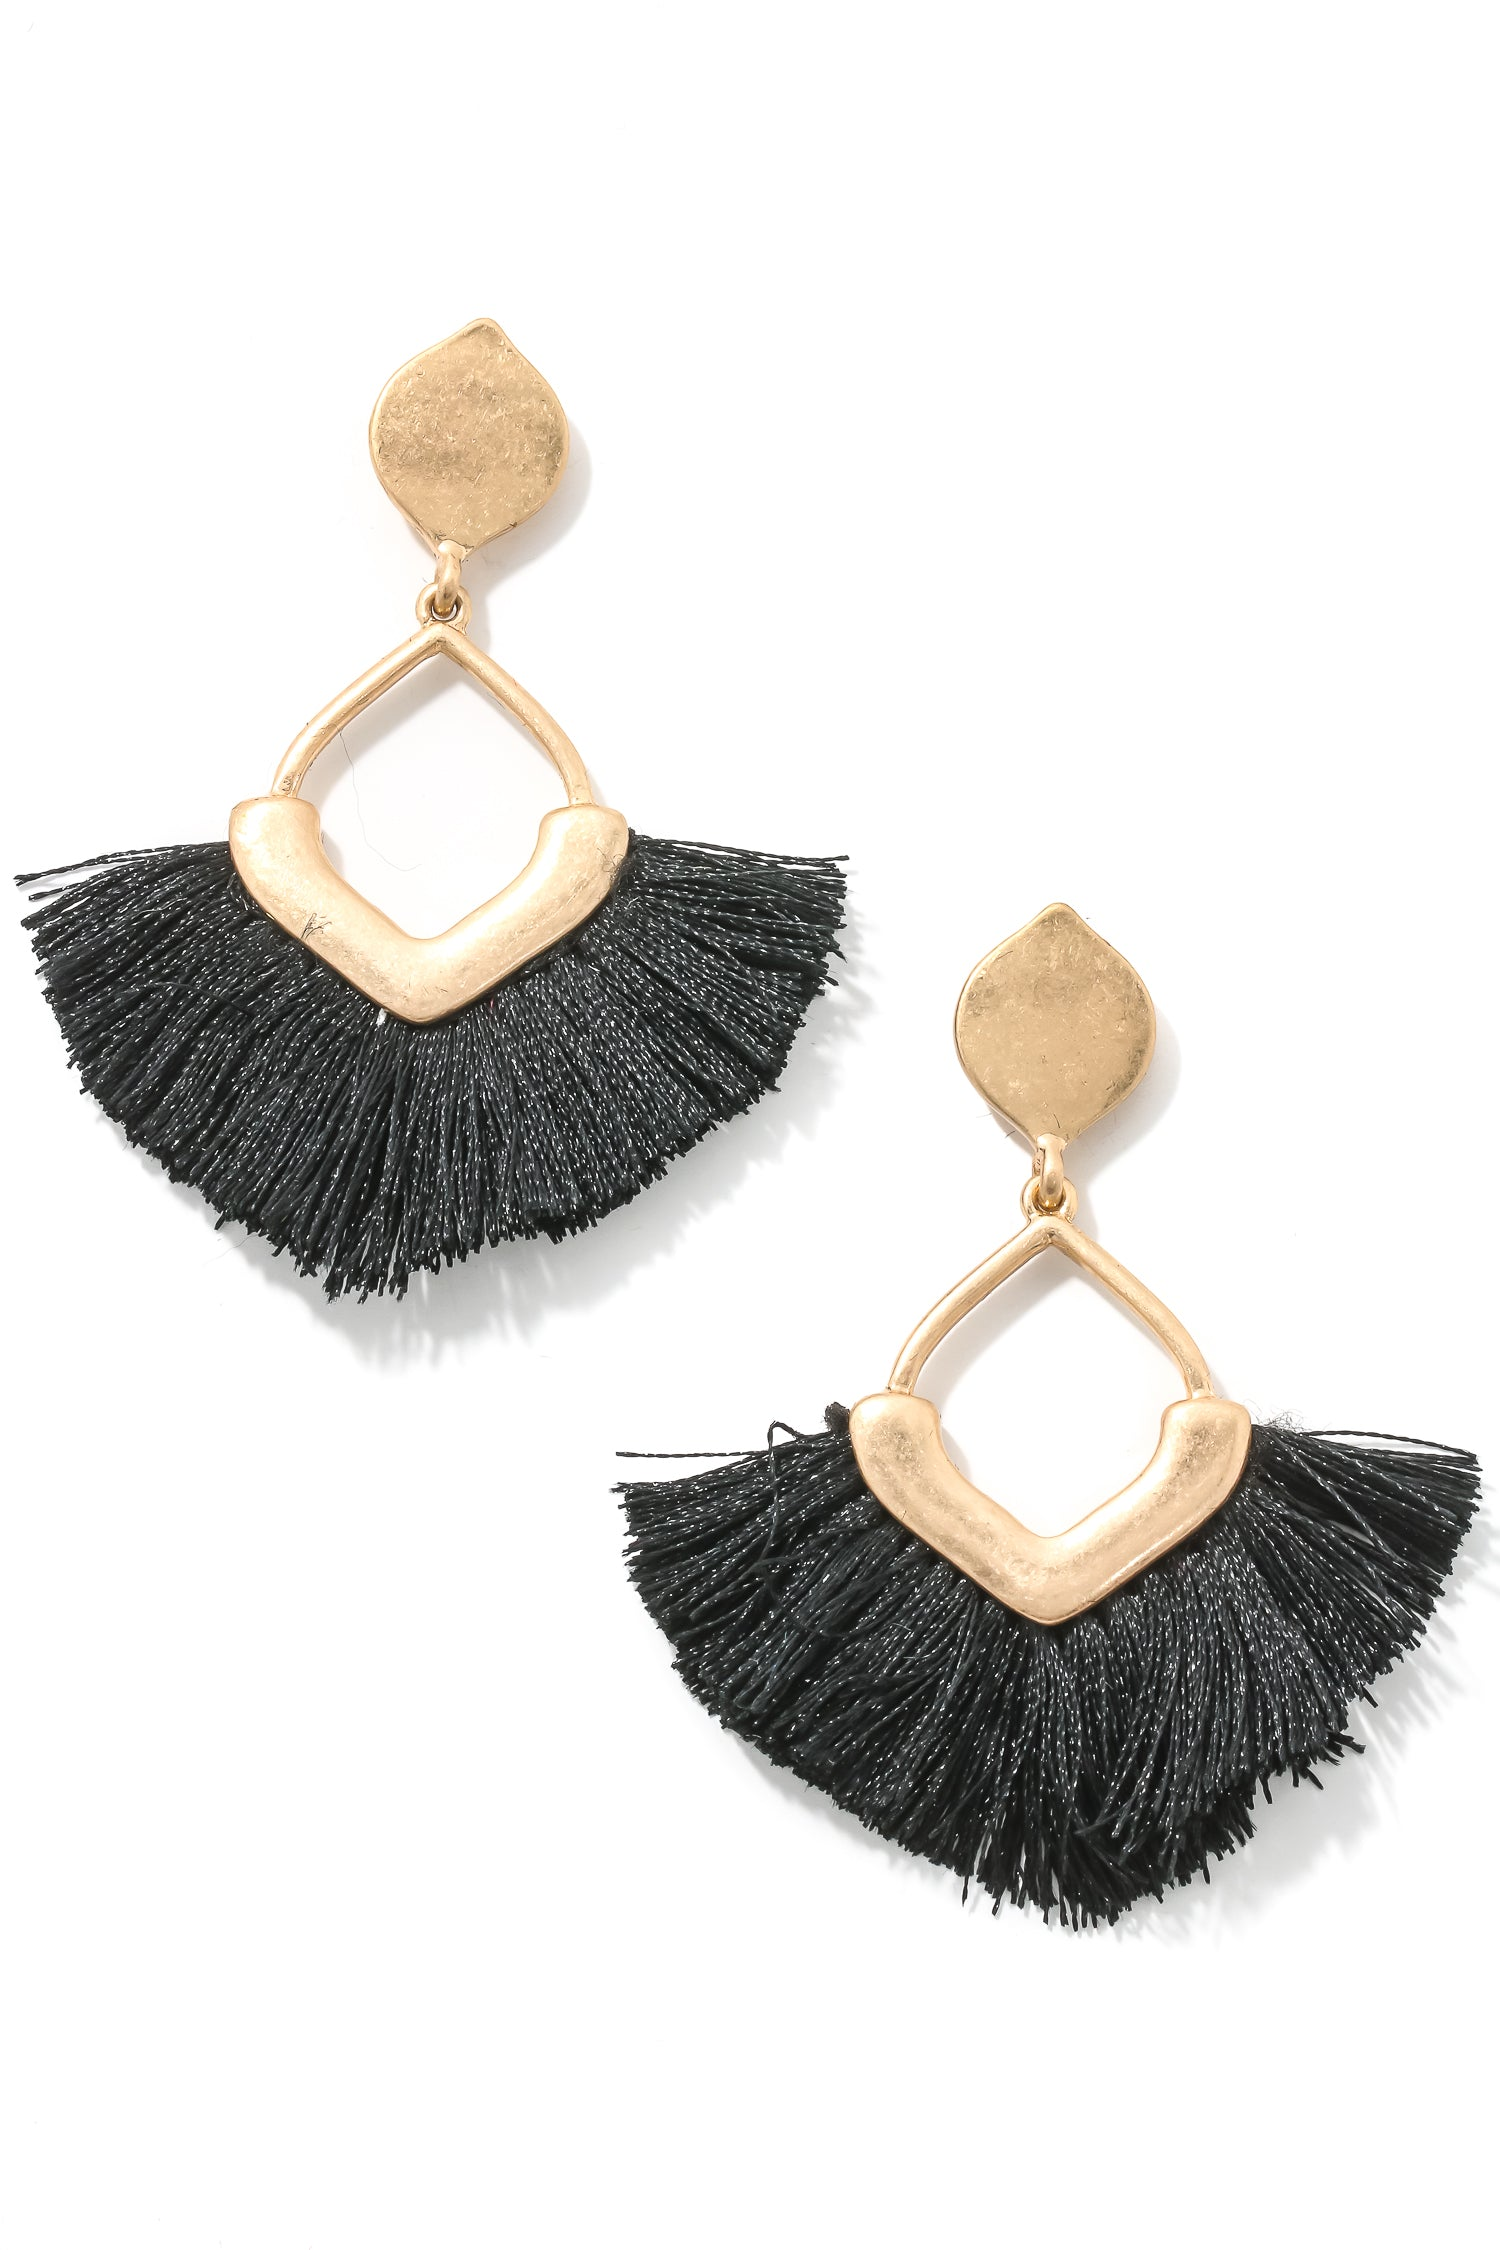 Flirty Fringe Earrings - 3 colors